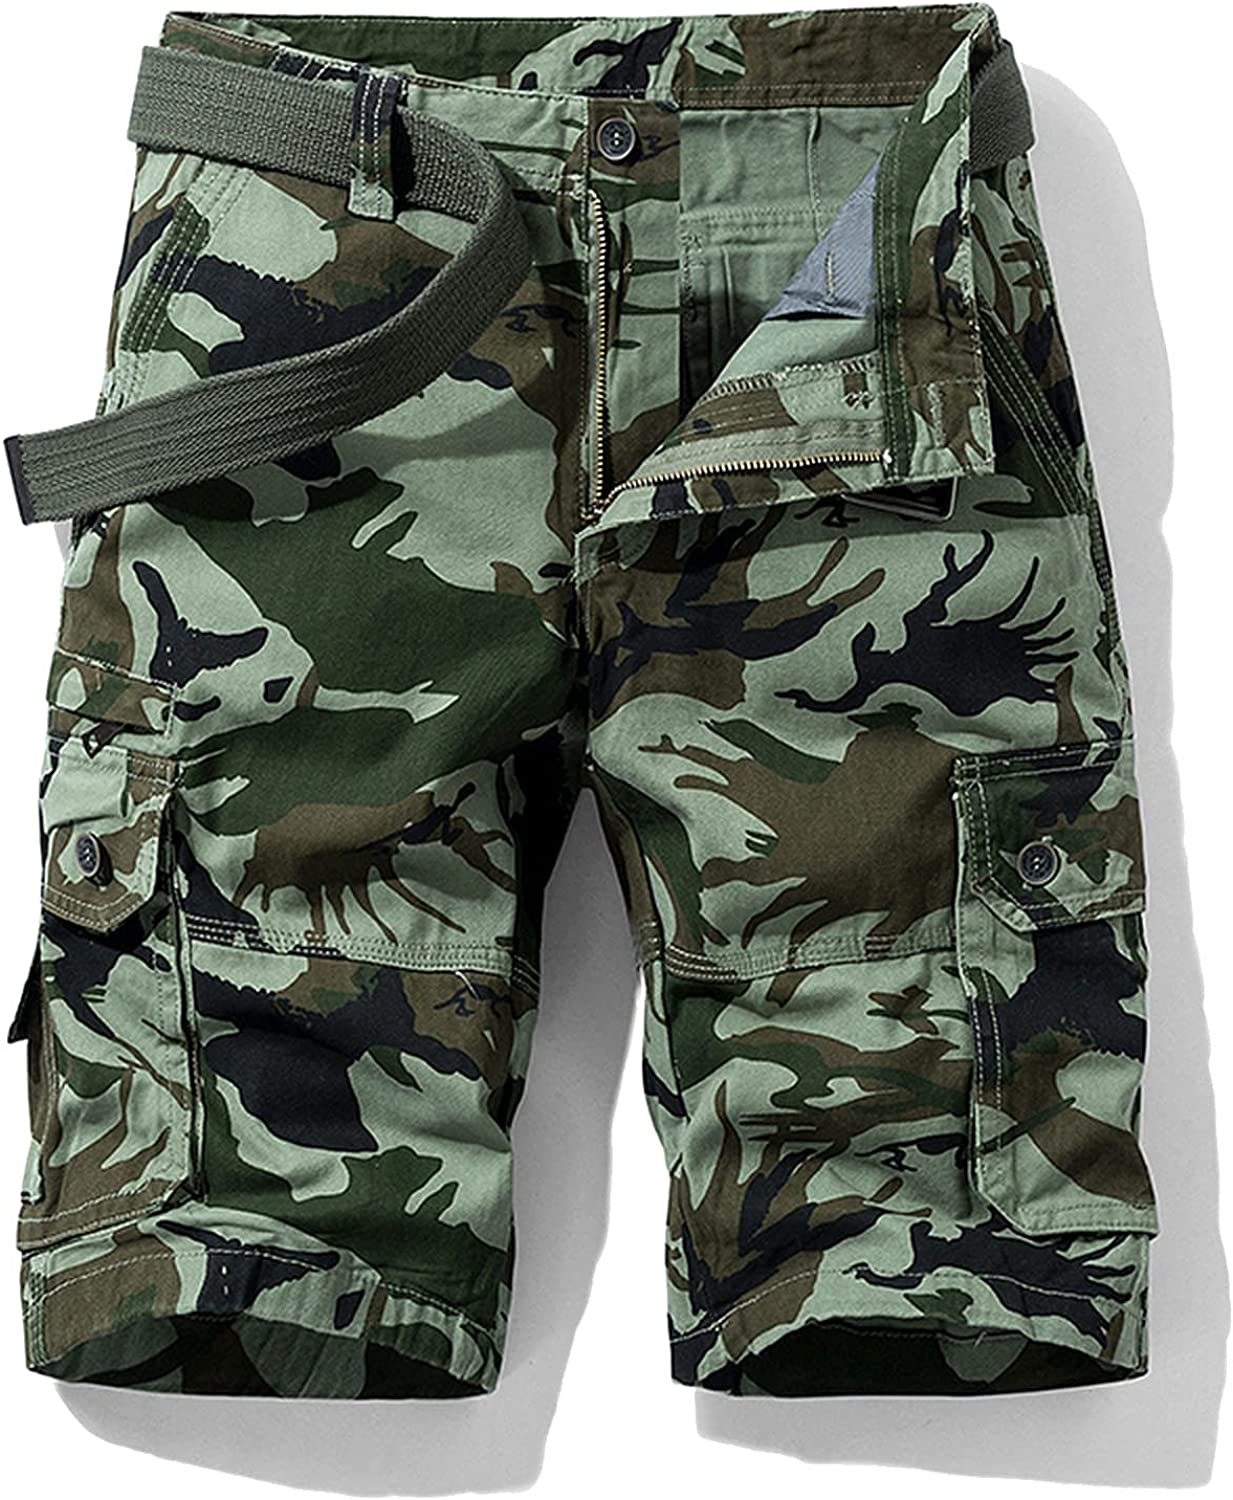 B dressy New Summer Cargo Shorts Men Camouflage Cotton Khaki Loose Casual Outwear Overalls-Green-3-32